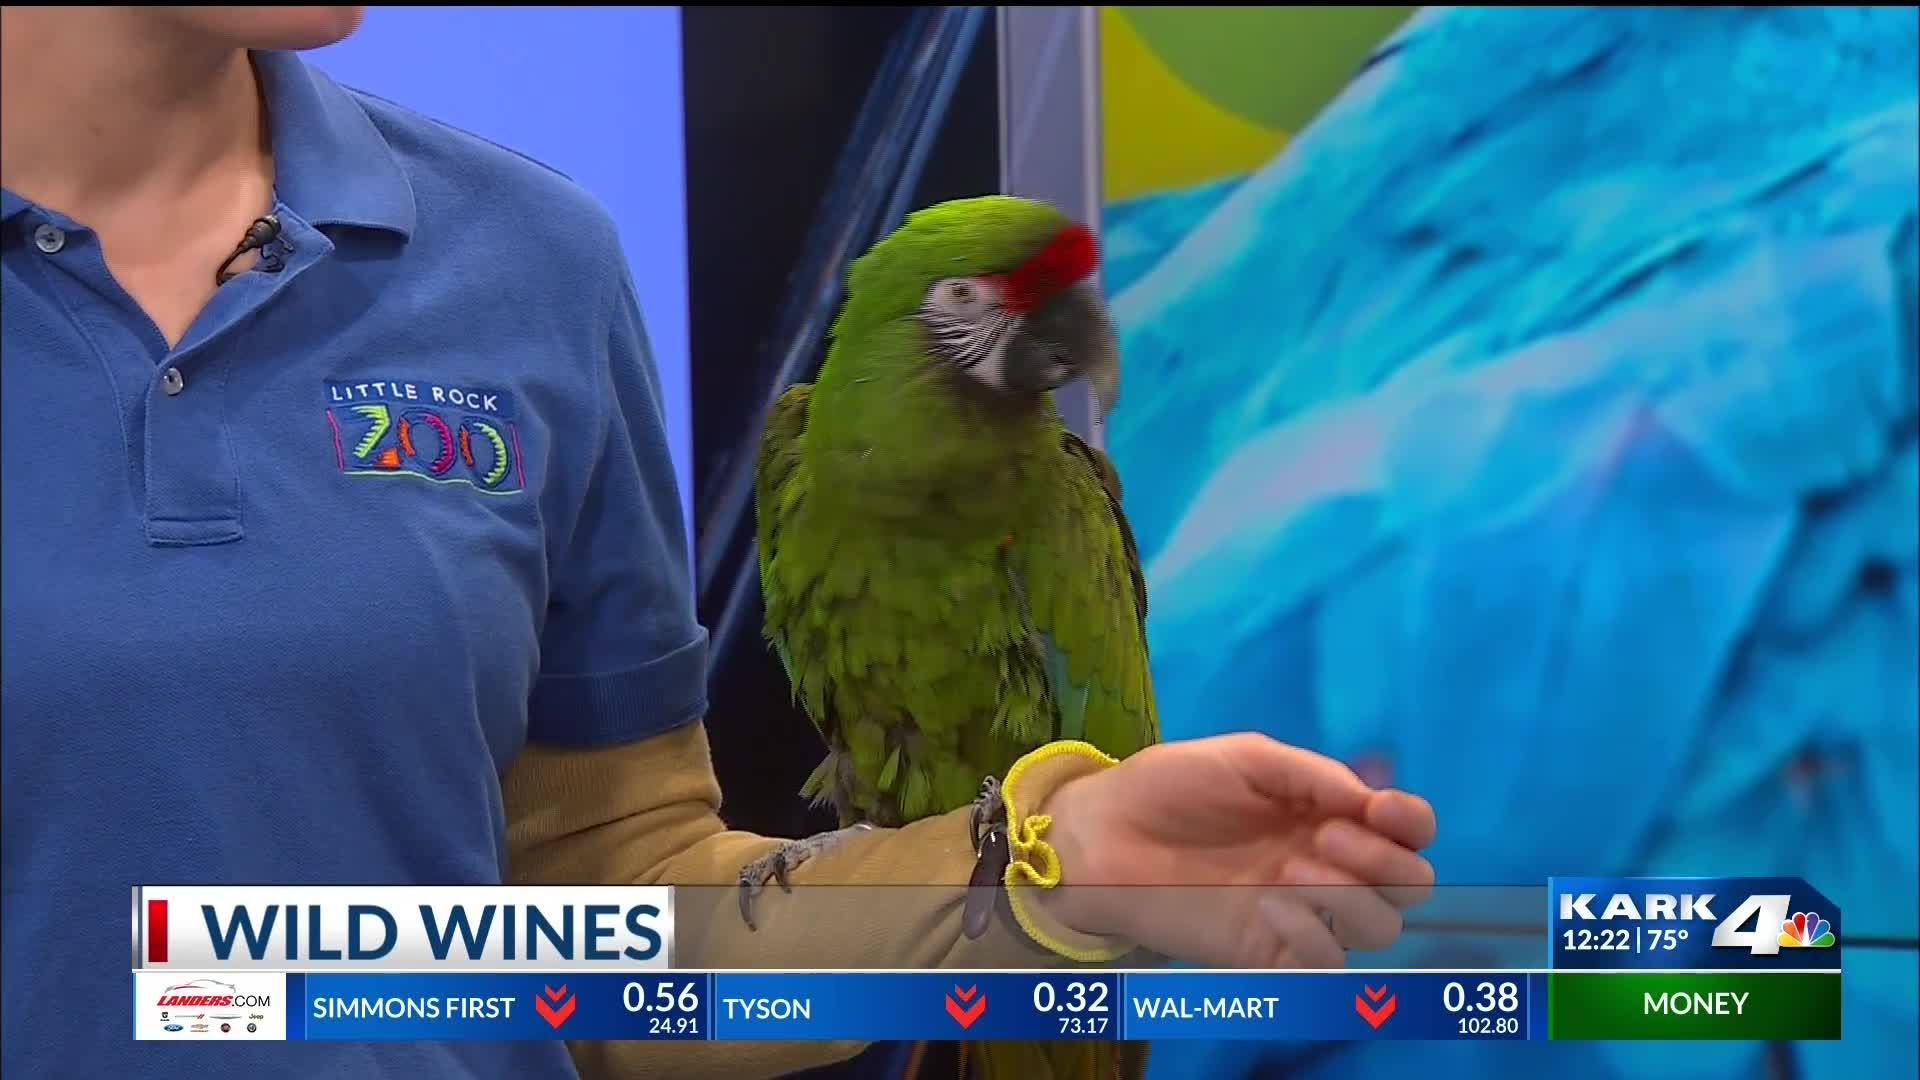 Little_Rock_Zoo__Wild_Wines_at_the_Zoo_8_20190422173233-118809306